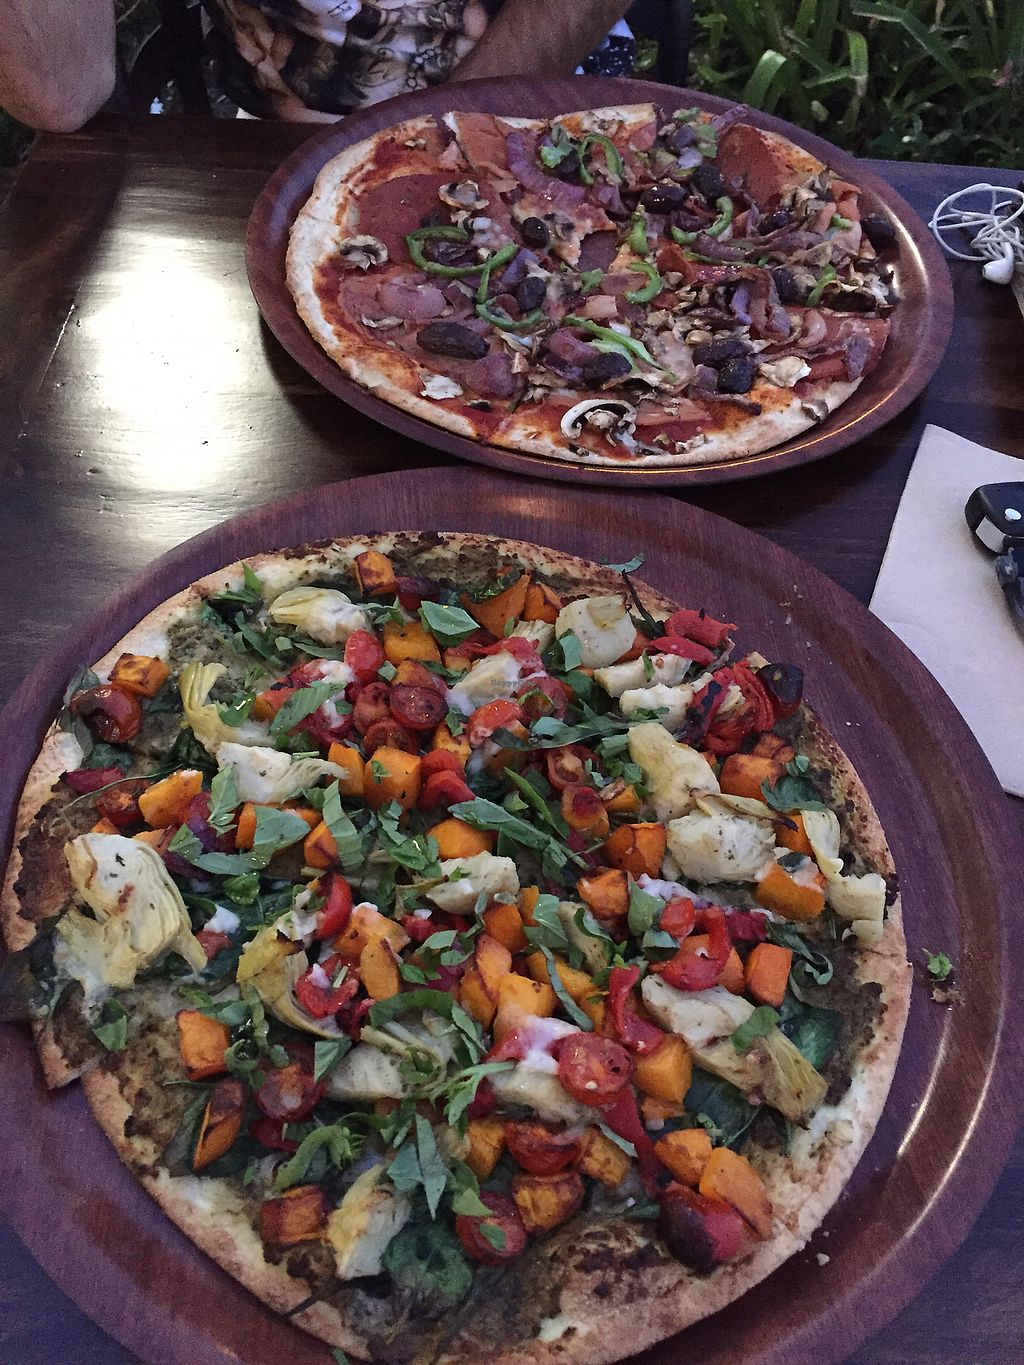 "Photo of Rustica Pizza Bar  by <a href=""/members/profile/CeciliaM"">CeciliaM</a> <br/>Incredible pizzas <br/> March 29, 2018  - <a href='/contact/abuse/image/112122/377547'>Report</a>"